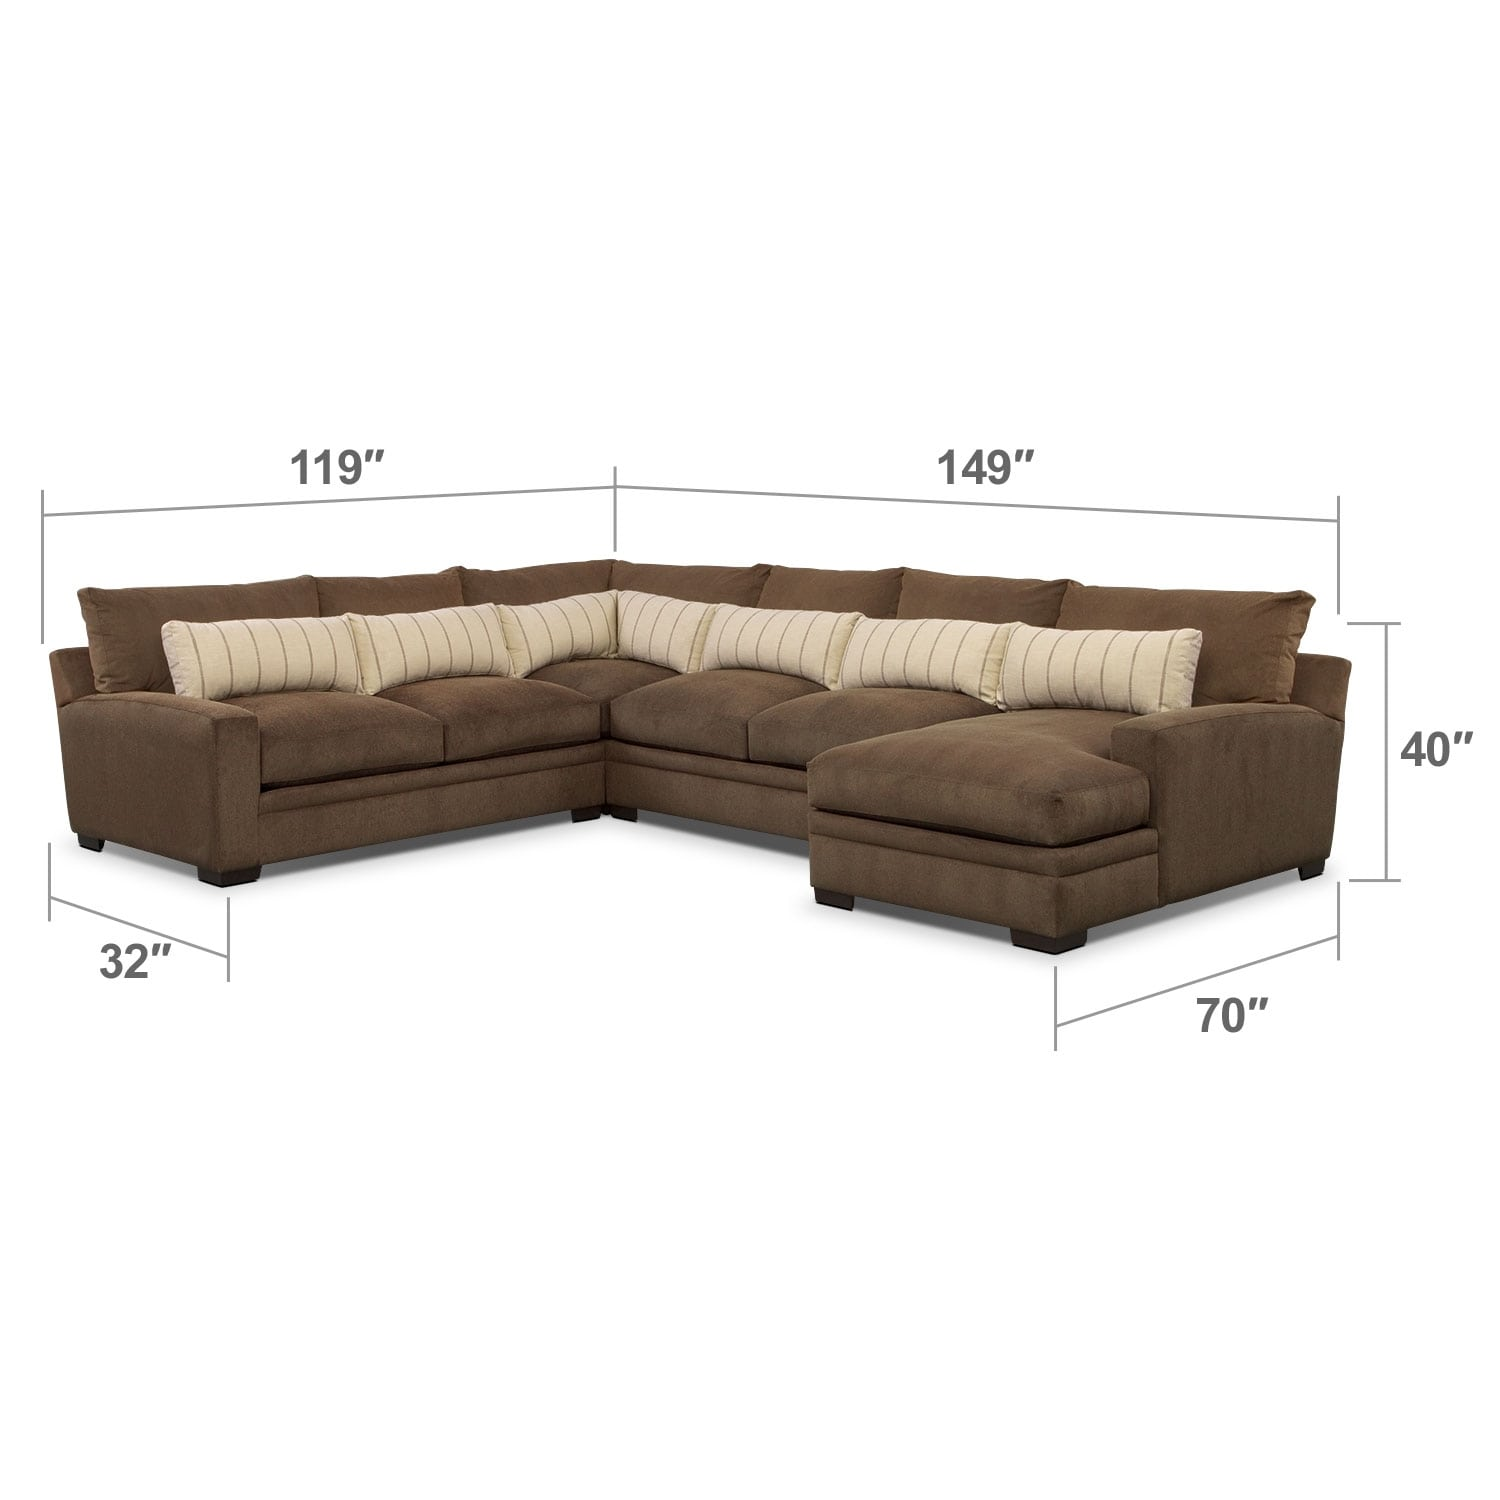 Living Room Furniture - Ventura 4-Piece Sectional with Right-Facing Chaise - Brown